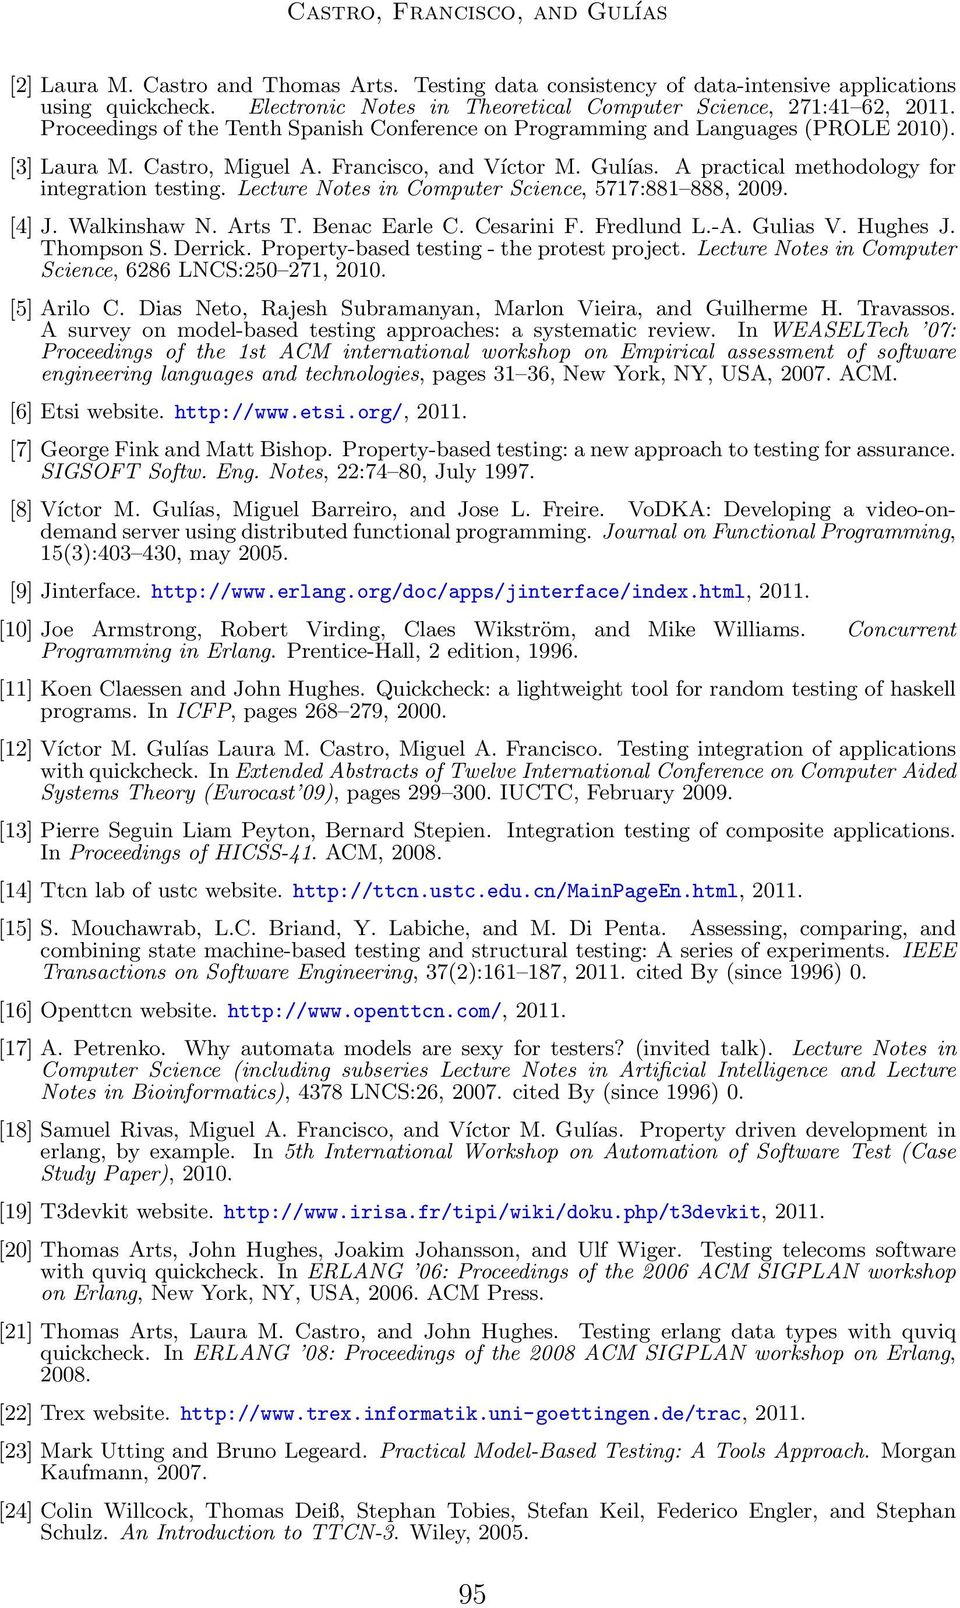 Lecture Notes in Computer Science, 5717:881 888, 2009. [4] J. Walkinshaw N. Arts T. Benac Earle C. Cesarini F. Fredlund L.-A. Gulias V. Hughes J. Thompson S. Derrick.